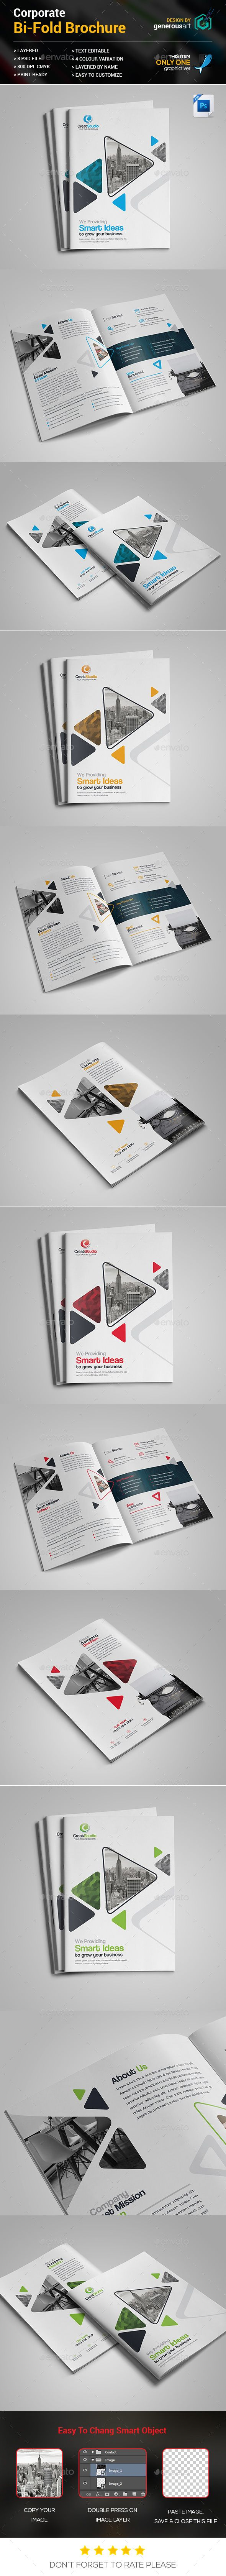 Business Bi-Fold Brochure Template PSD